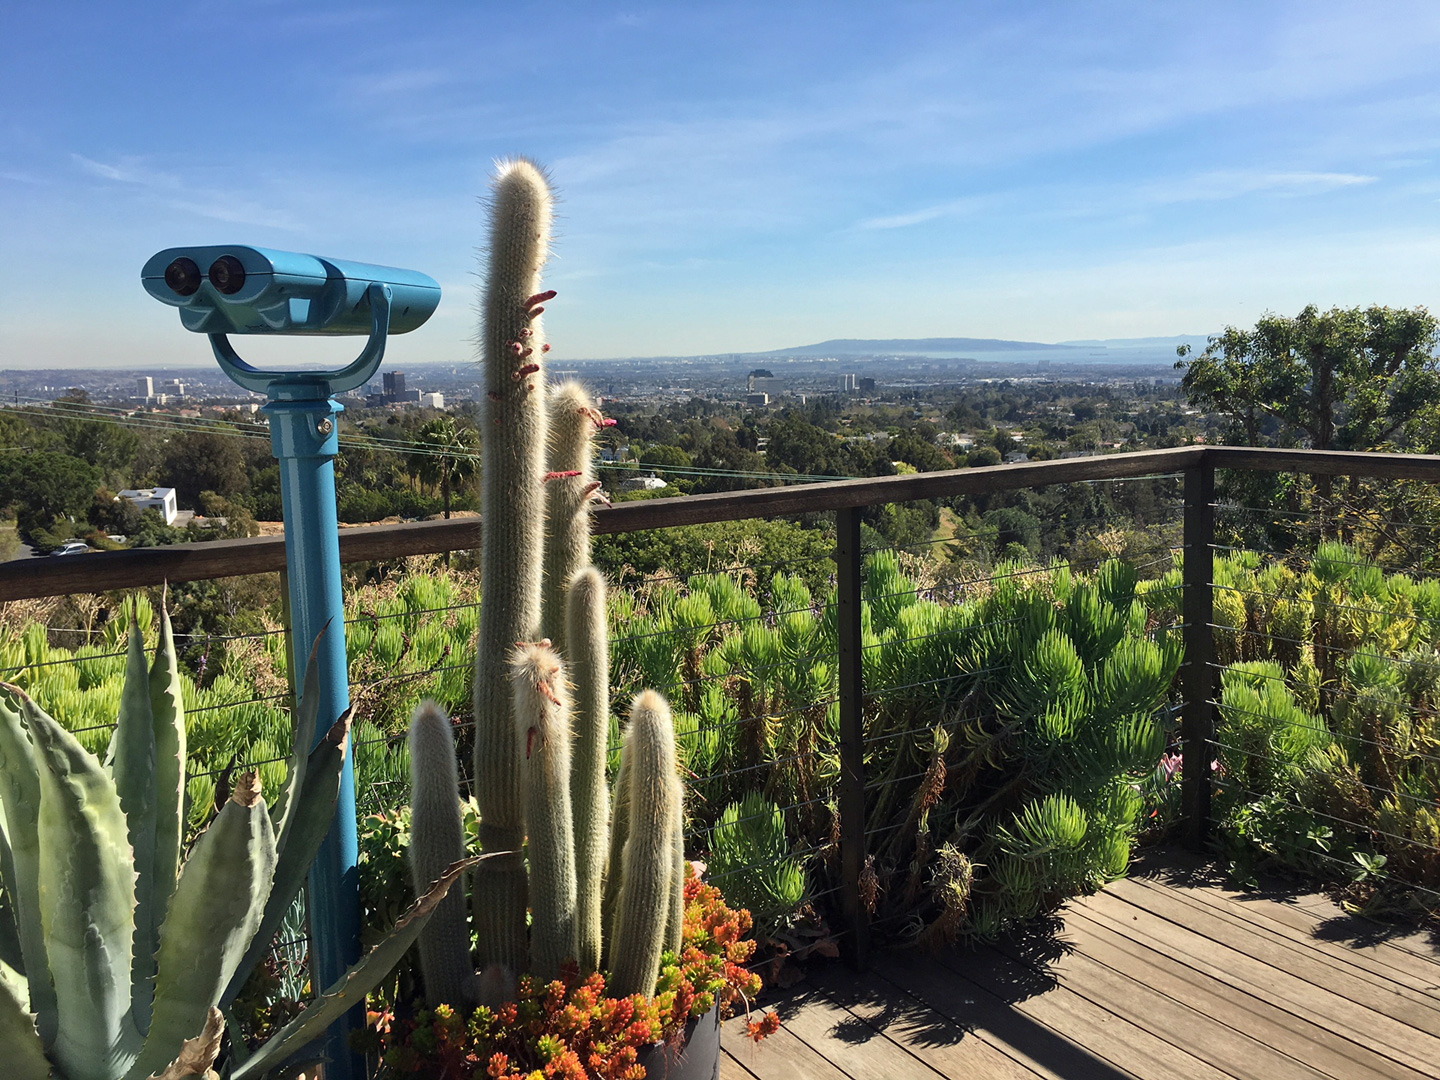 …viewing binoculars to get a closer look at everything from the nearby Getty Center to the nighttime sparkle of Queens Necklace in Palos Verdes.